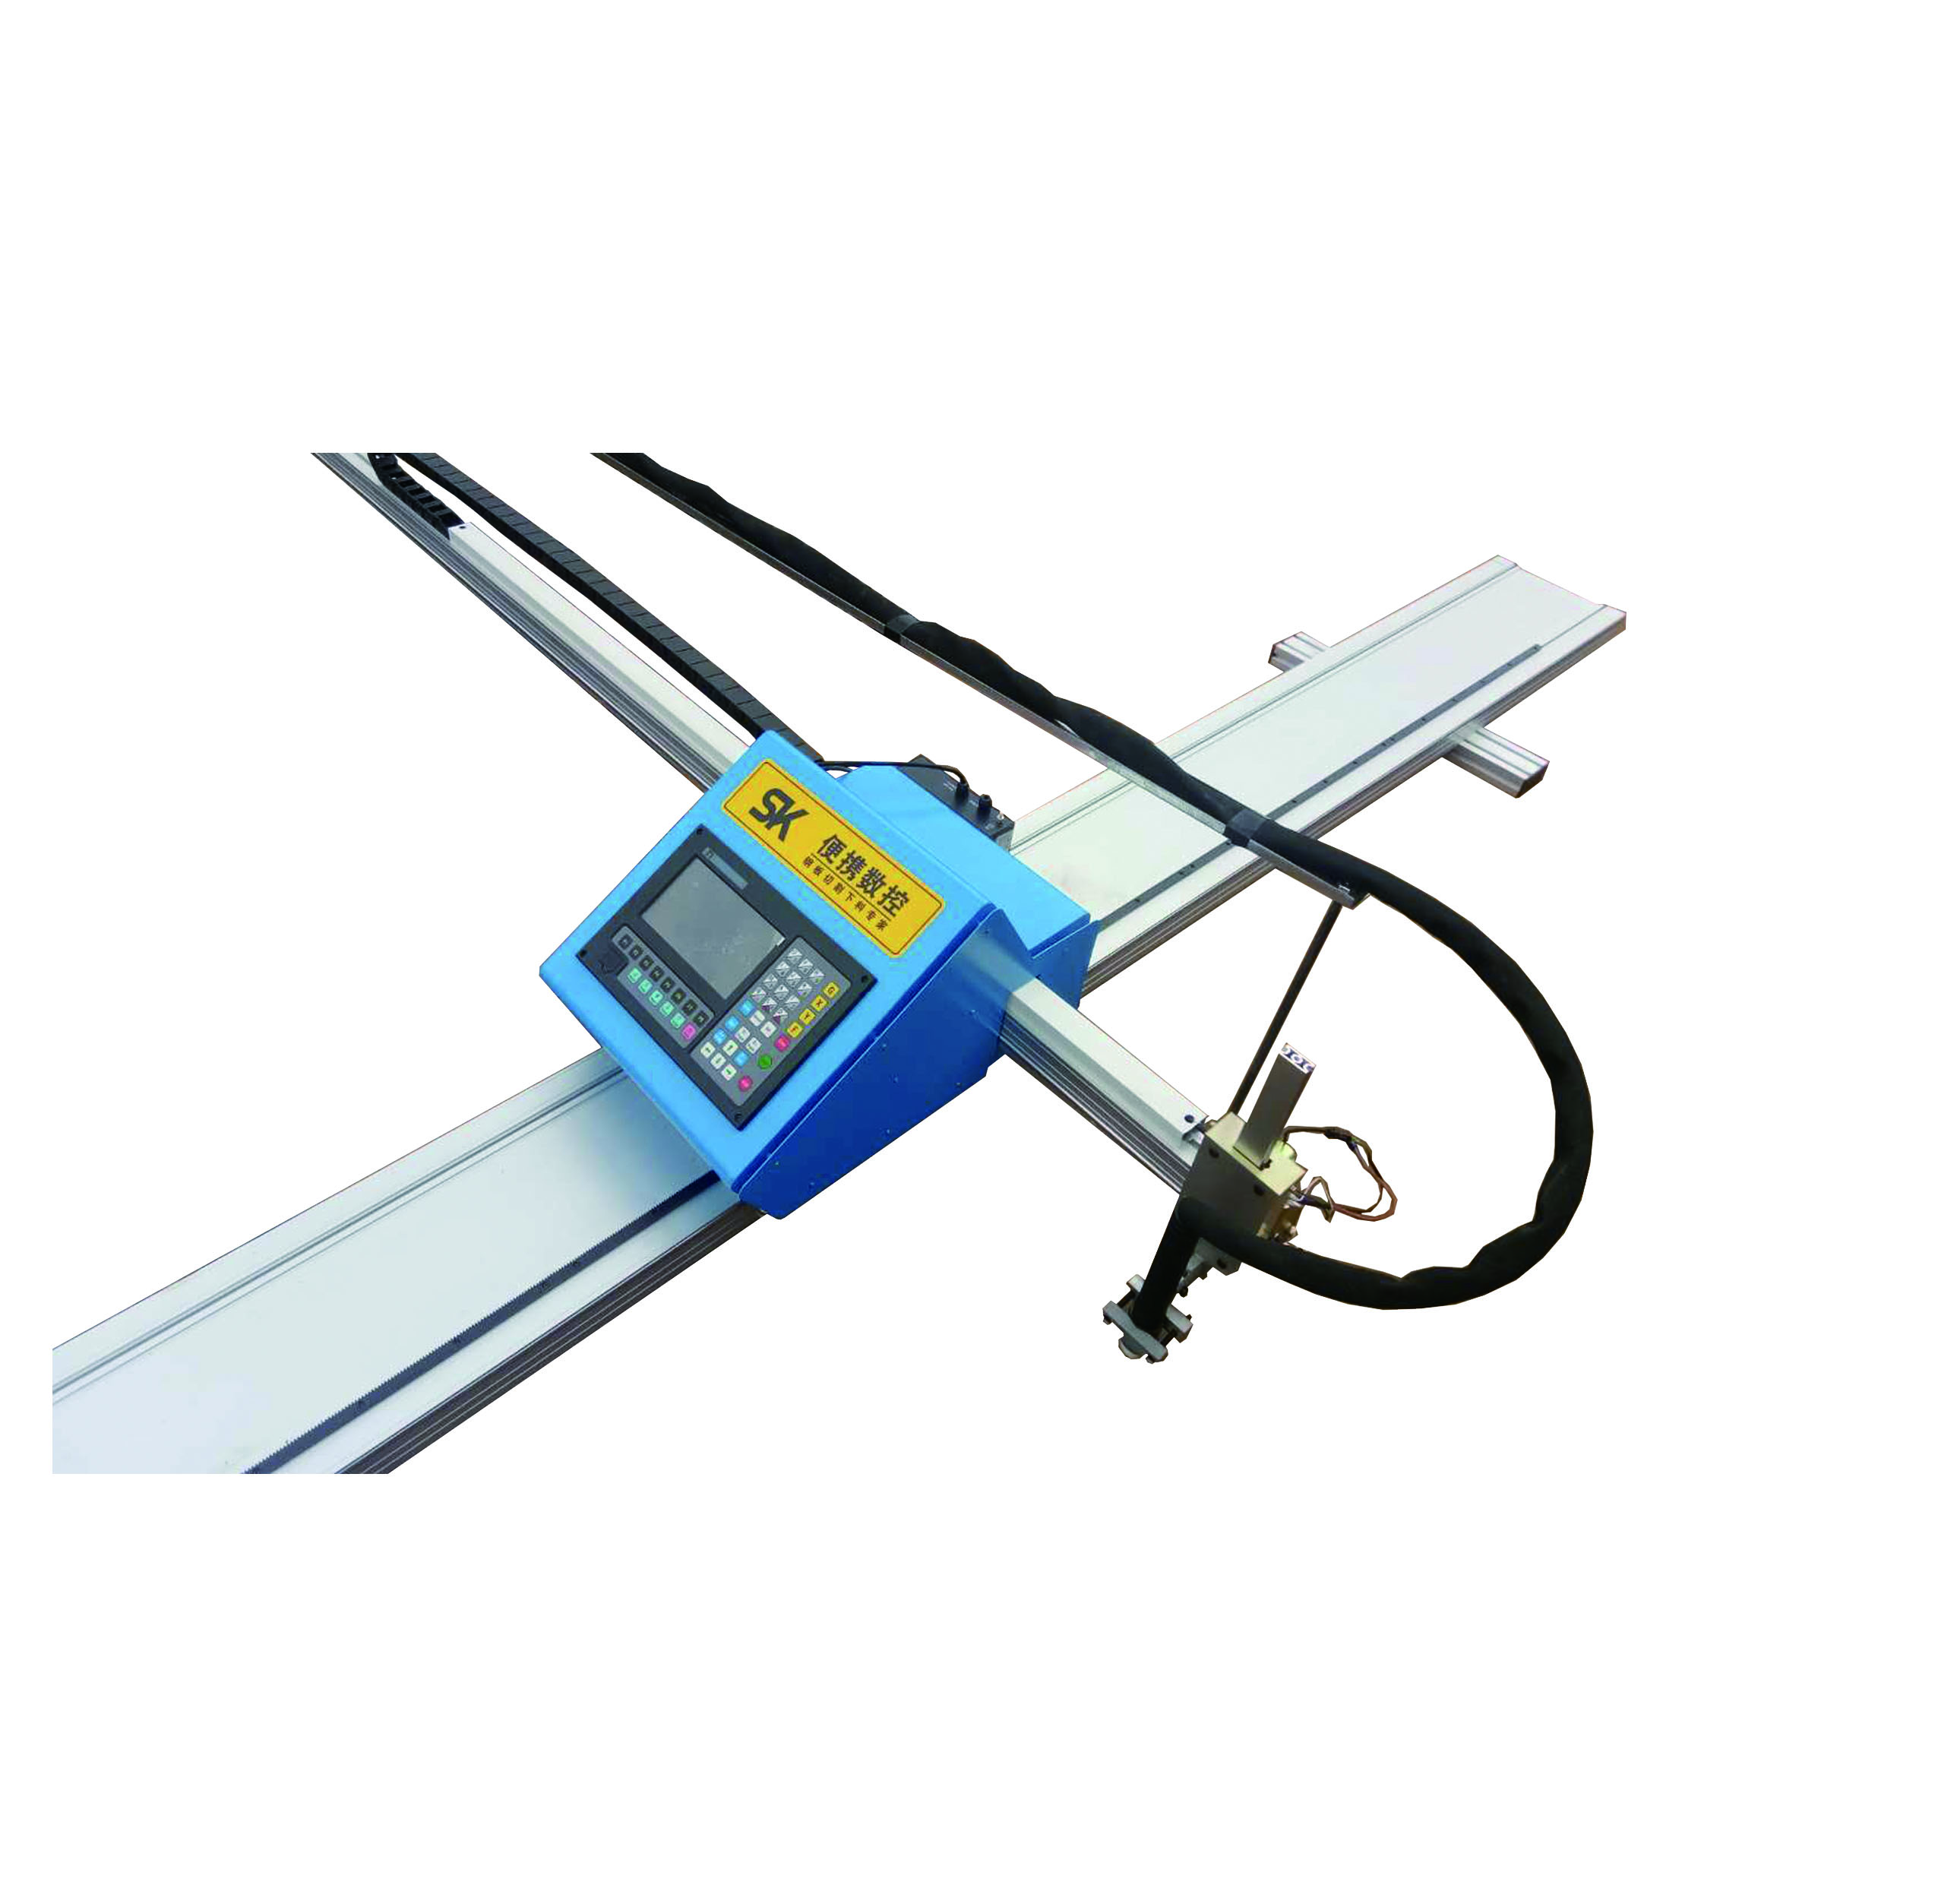 title='IDIKAR SK series portable cnc cutting machine'